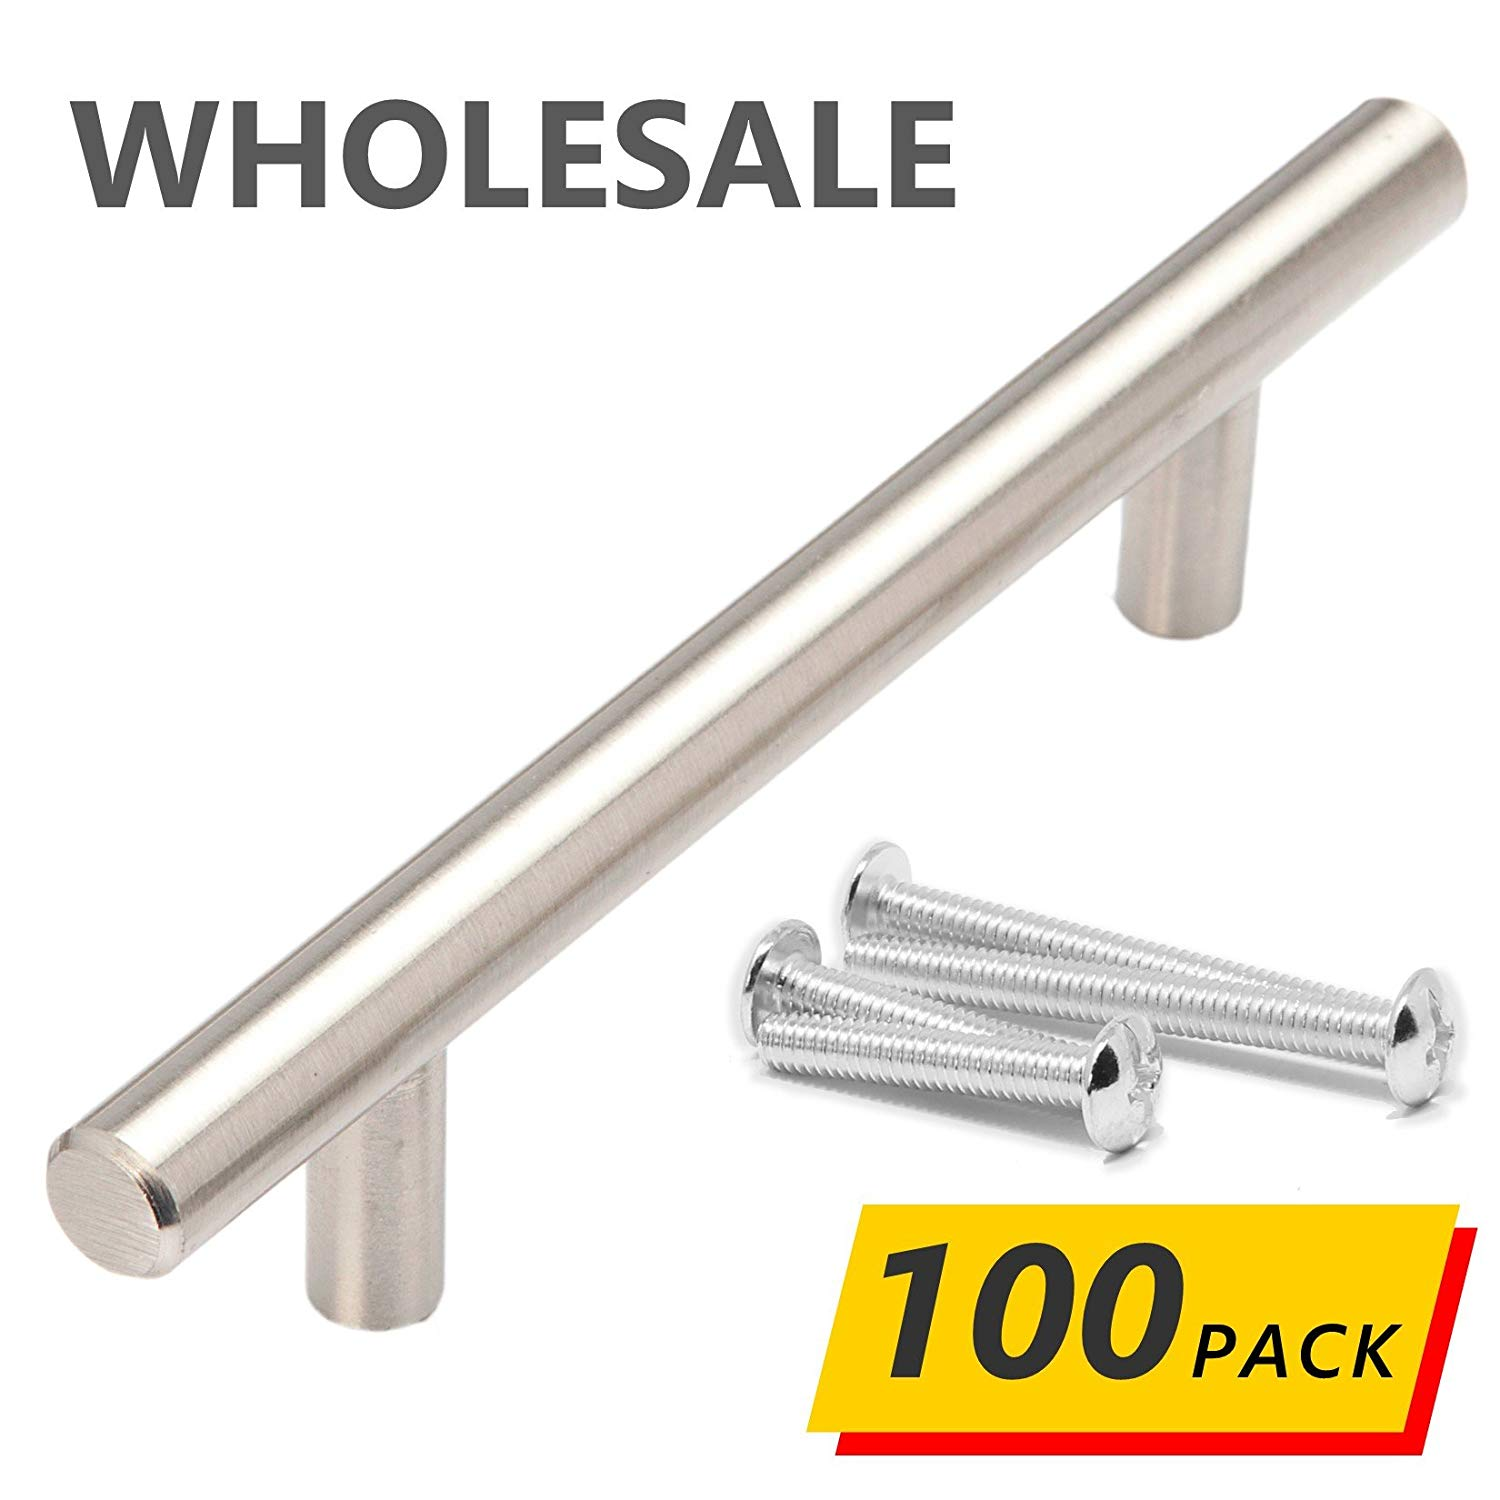 """100 Pack   6"""" Stainless Steel T Bar Cabinet Pull Handles: 3.75"""" Hole Spacing (3-3/4"""" 96mm) Brushed Satin Nickel Finish   Bulk Case Wholesale Kitchen Cabinet Hardware"""